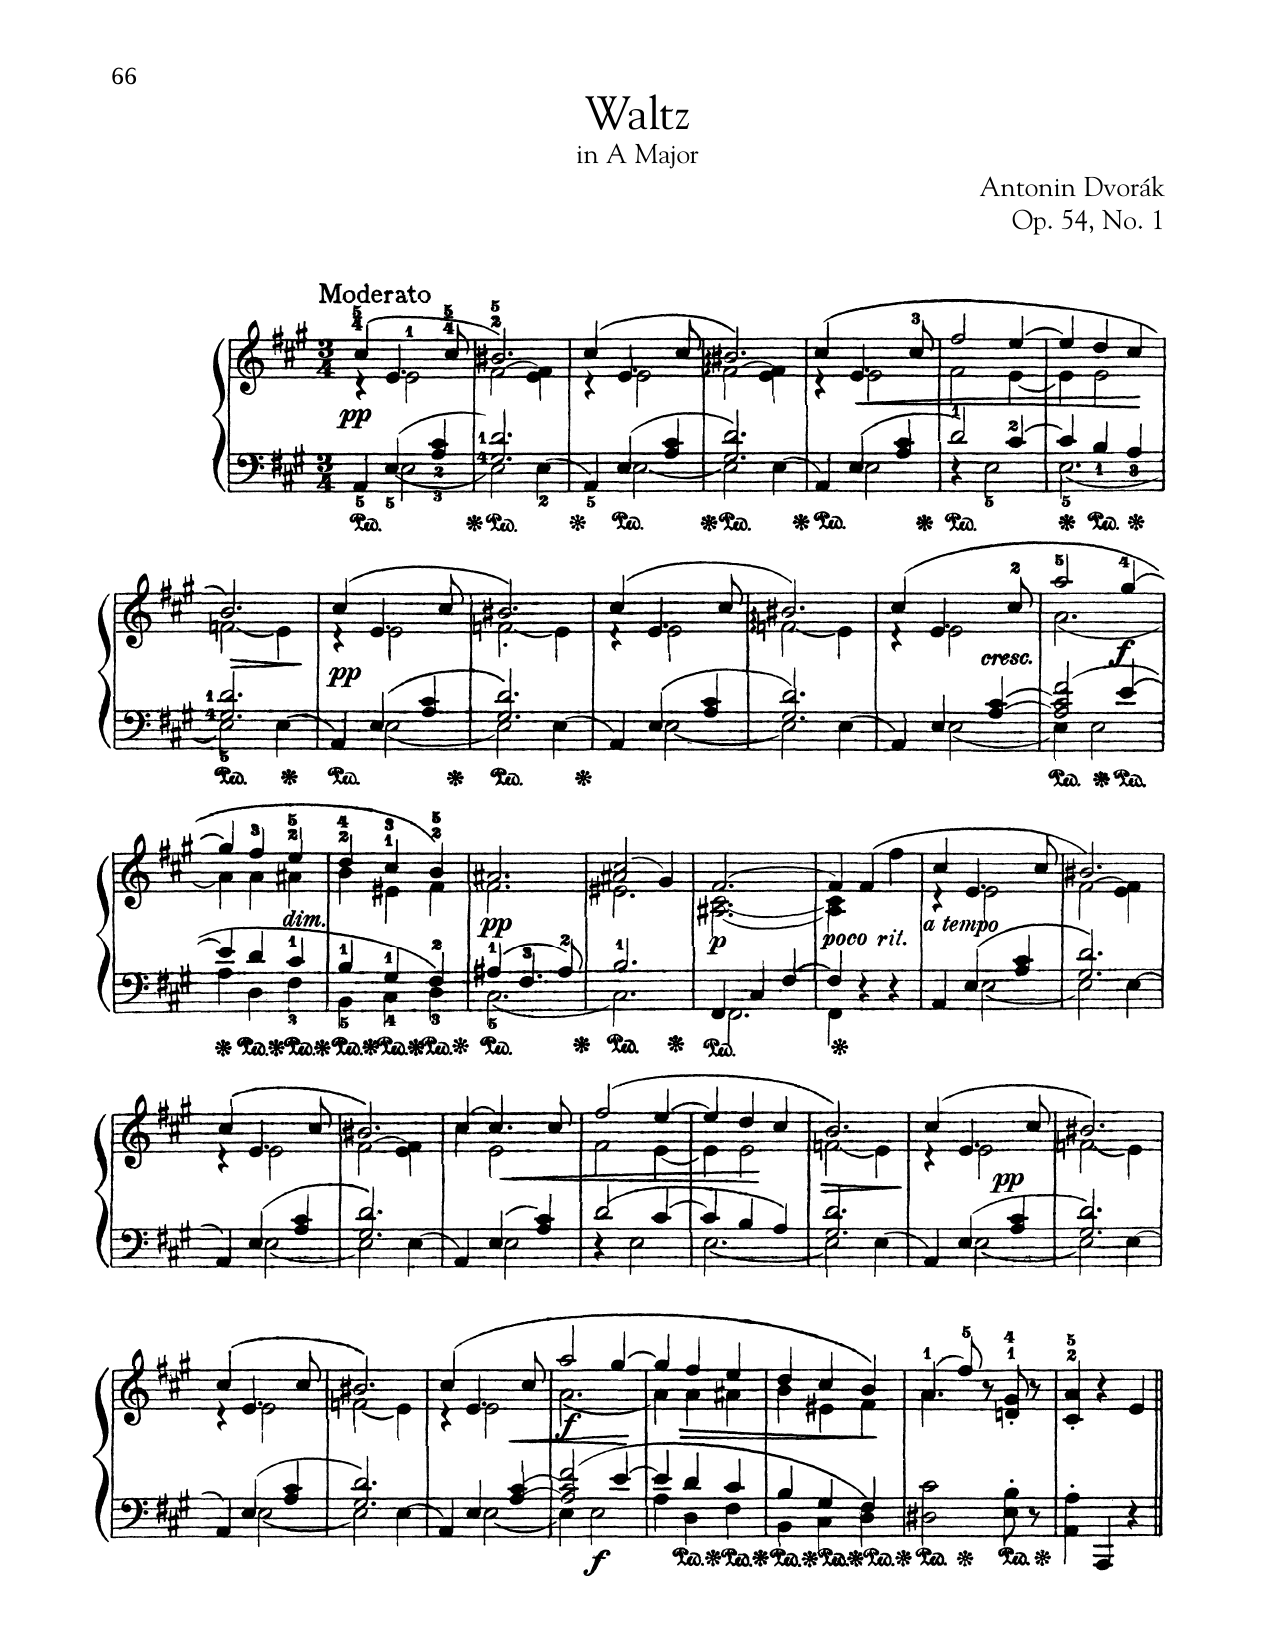 Waltz In A Major, Op. 54, No. 1 (Piano Solo)